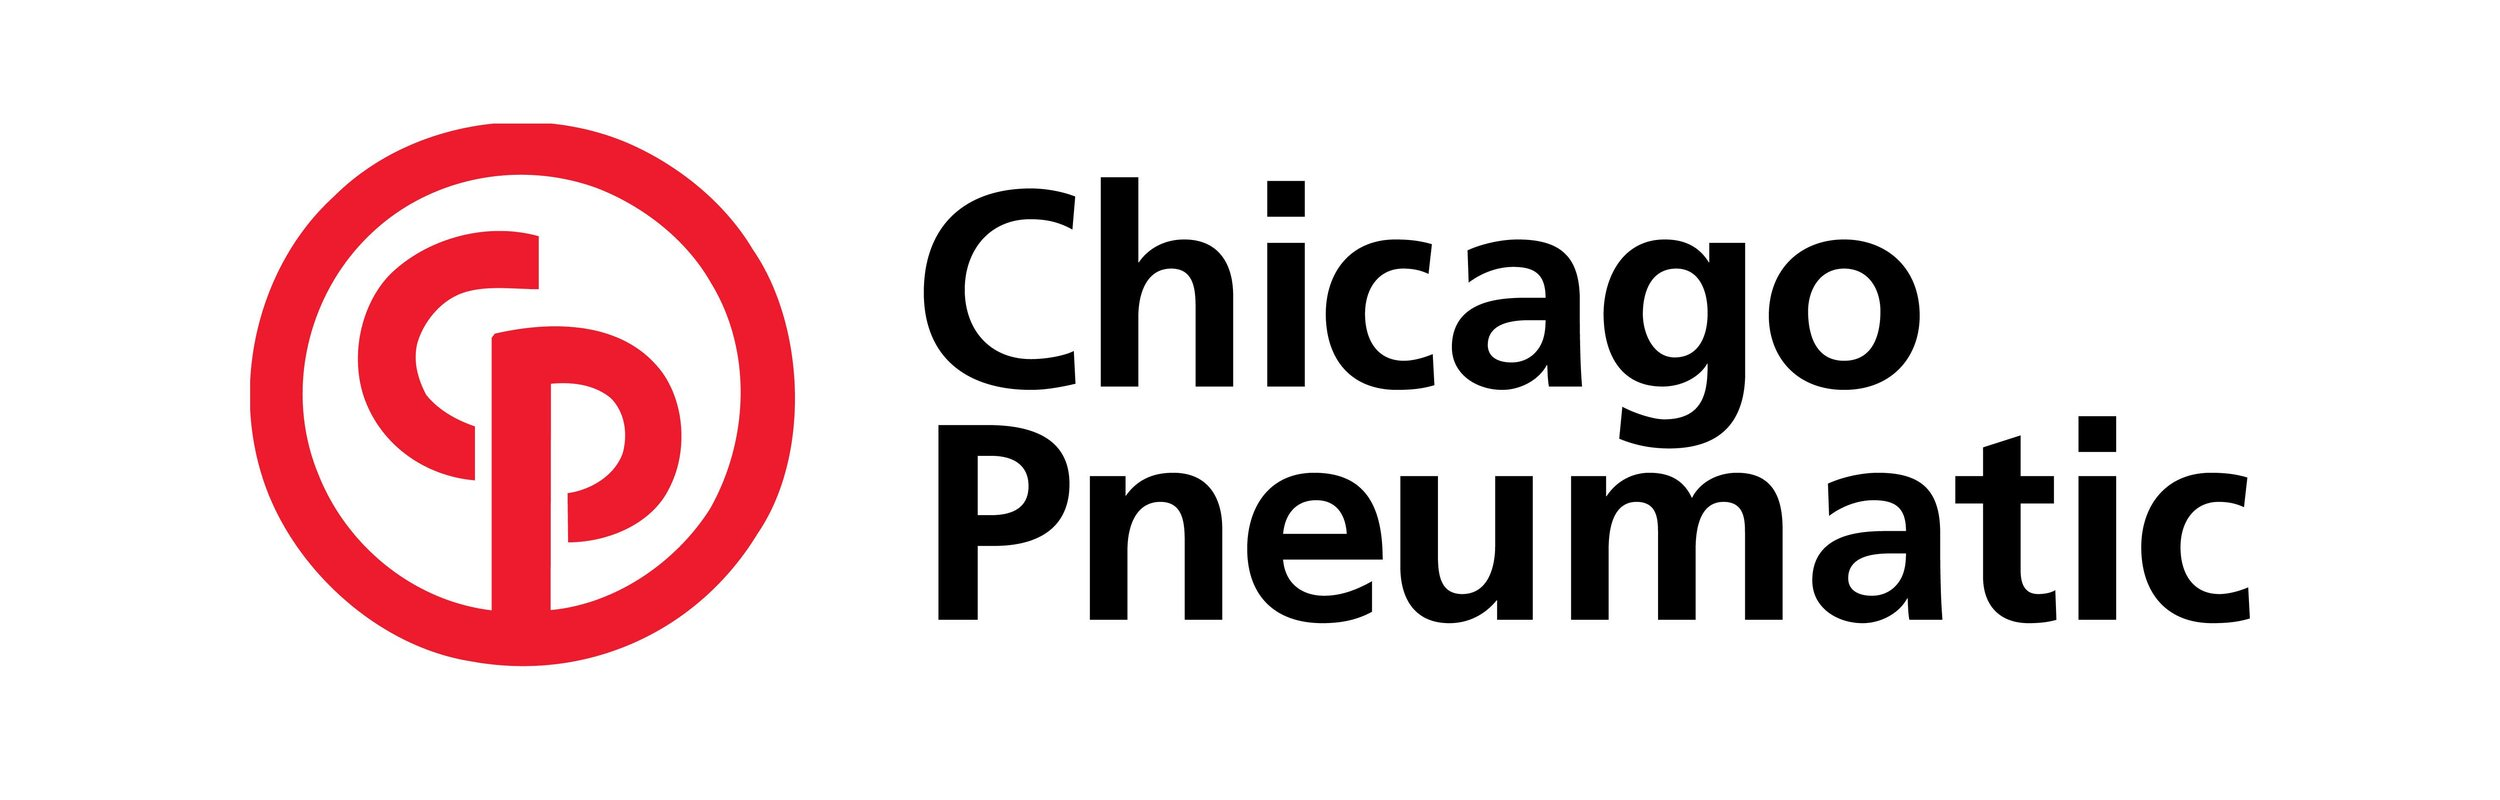 CP logo on white.jpg